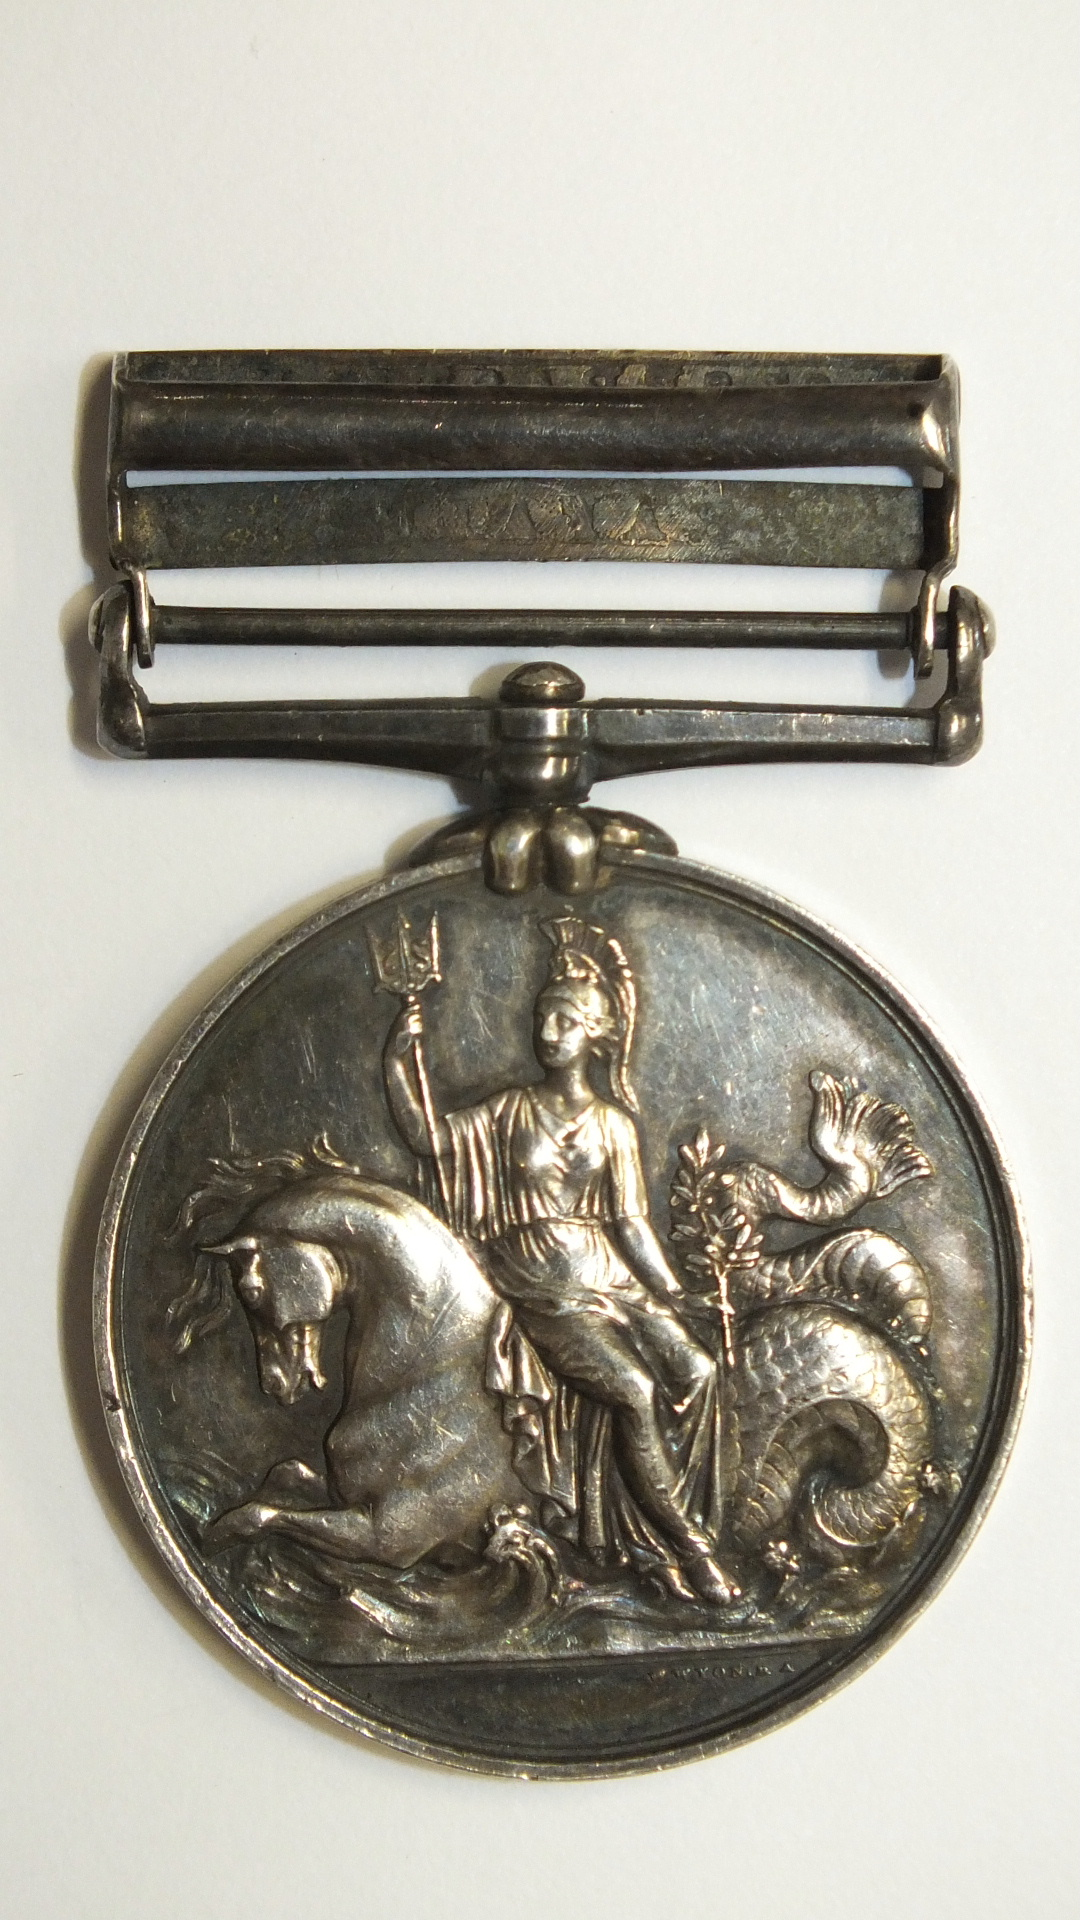 Lot 245 - A Naval General Service Medal 1793-1840 with two clasps, Trafalgar and St Sebastian, awarded to